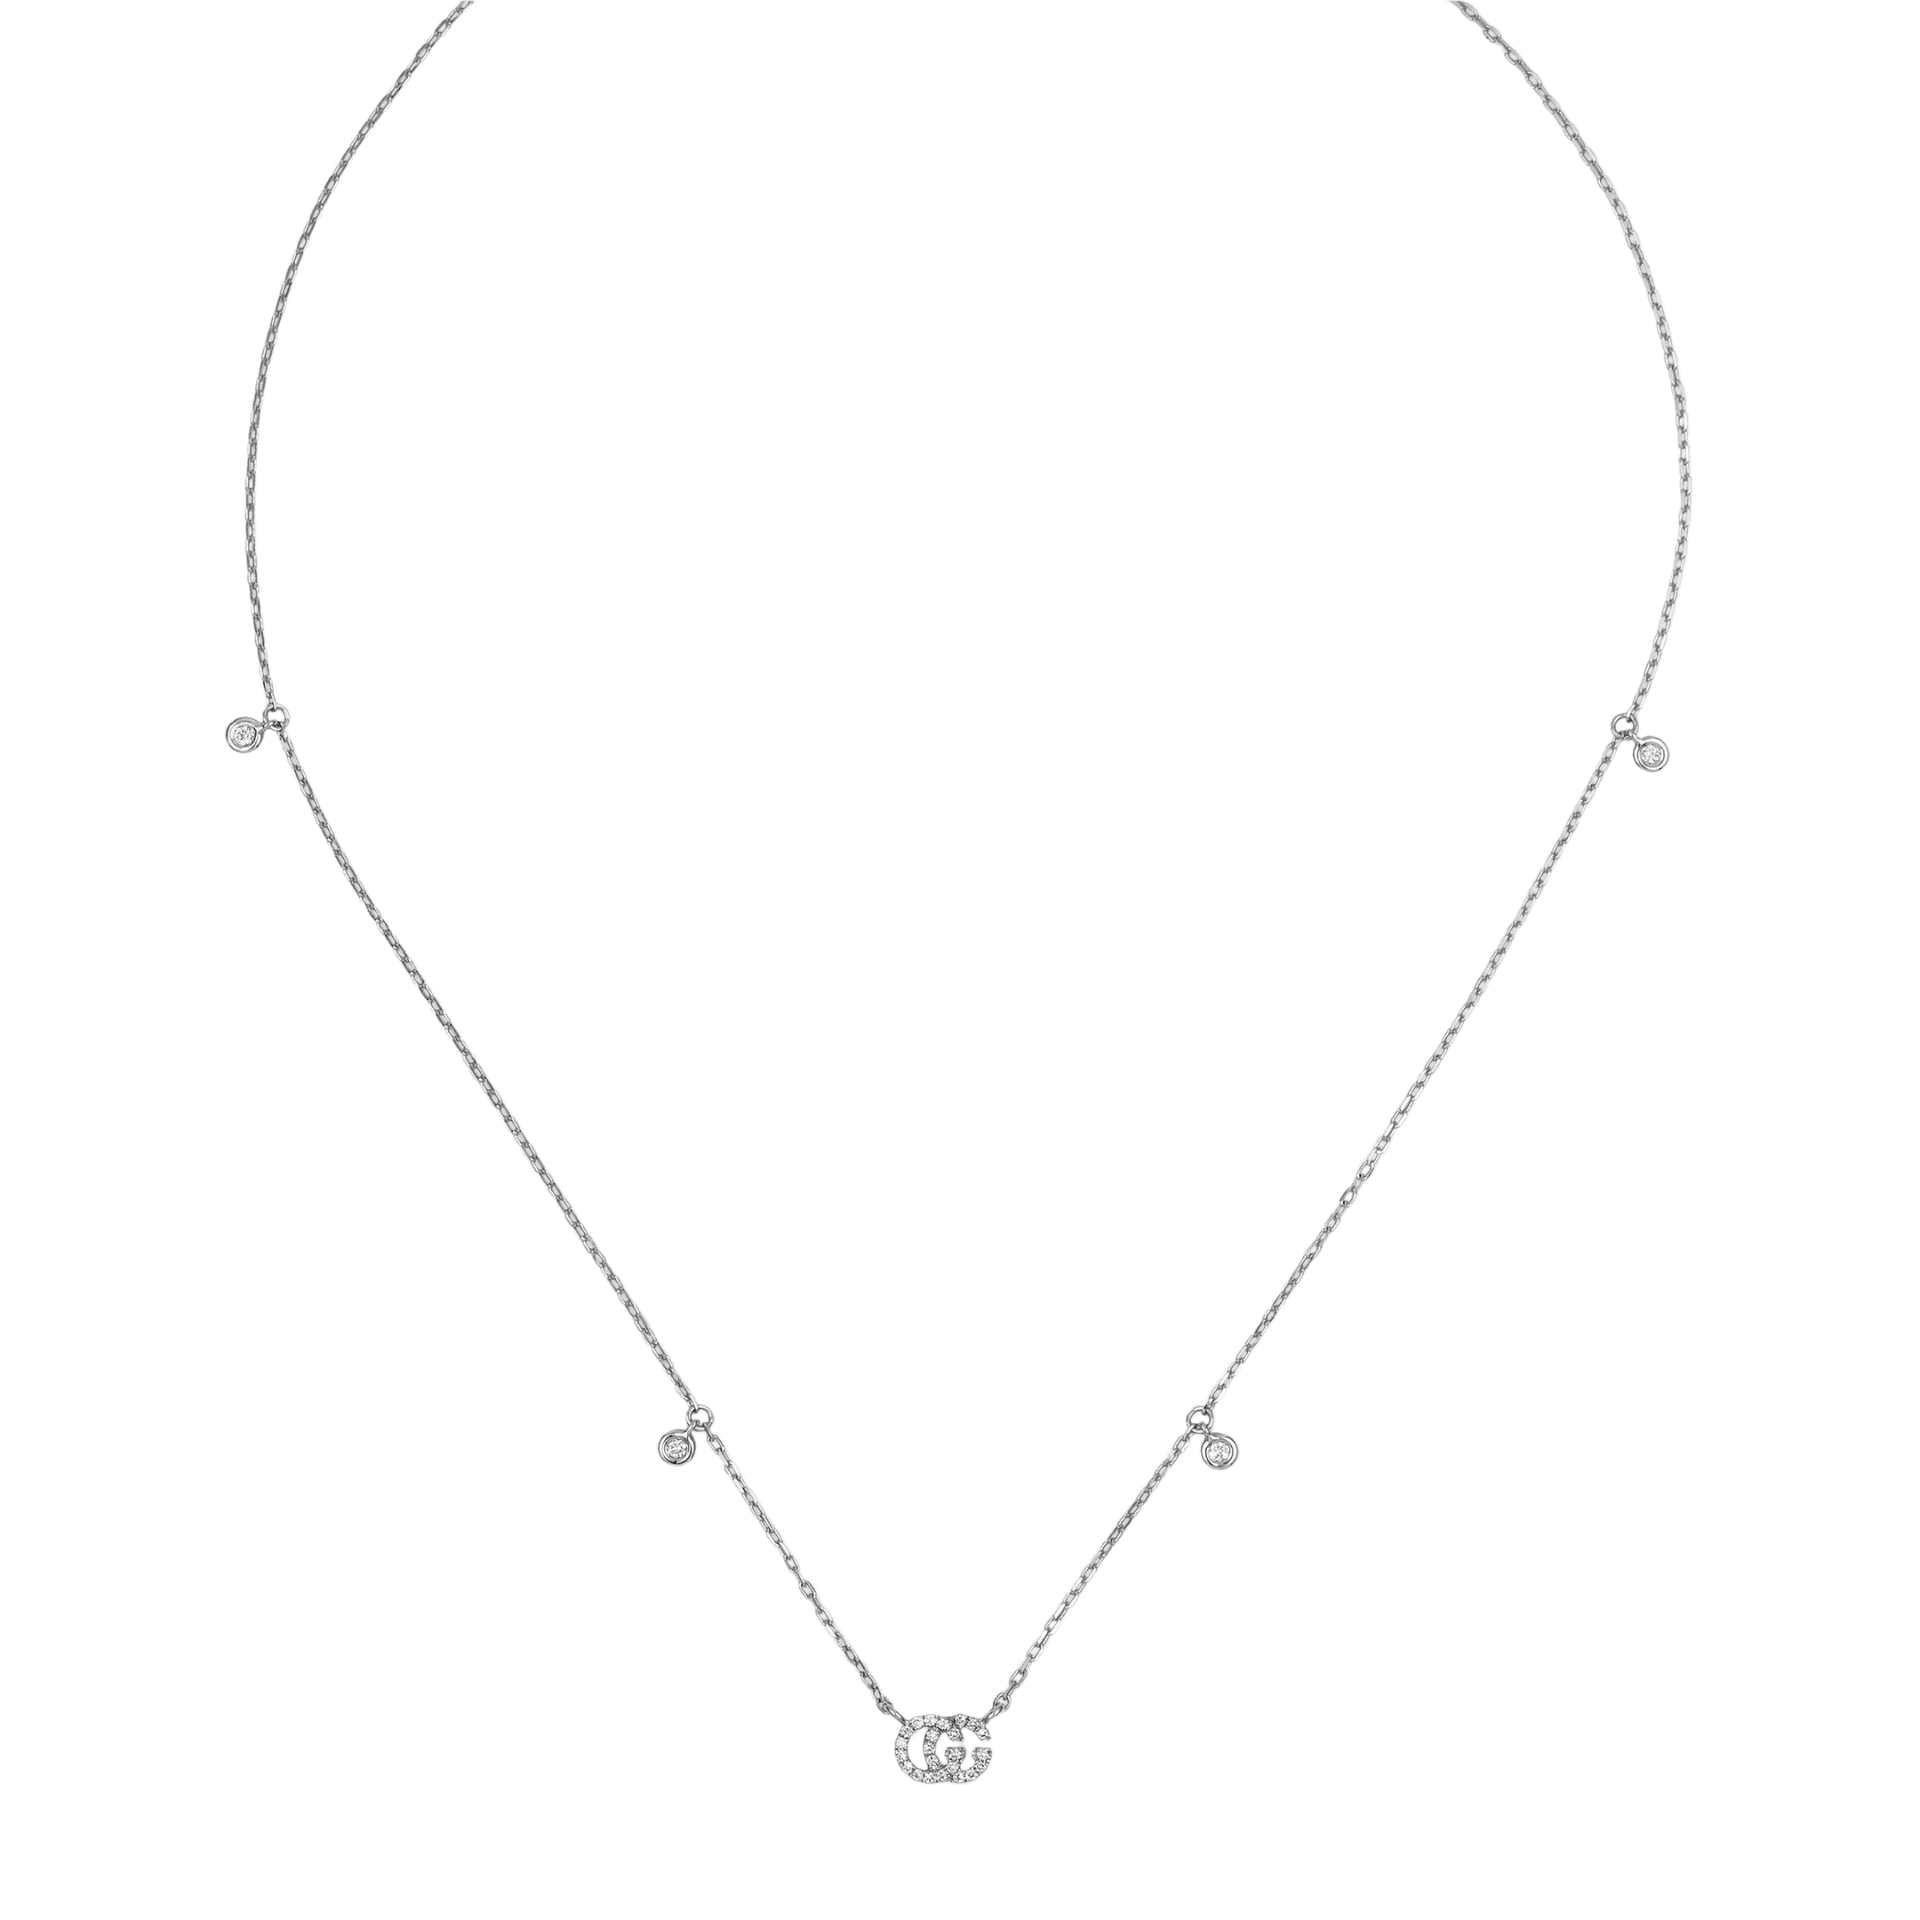 Gucci GG Running Necklace in 18k White Gold with Diamonds - Orsini Jewellers NZ